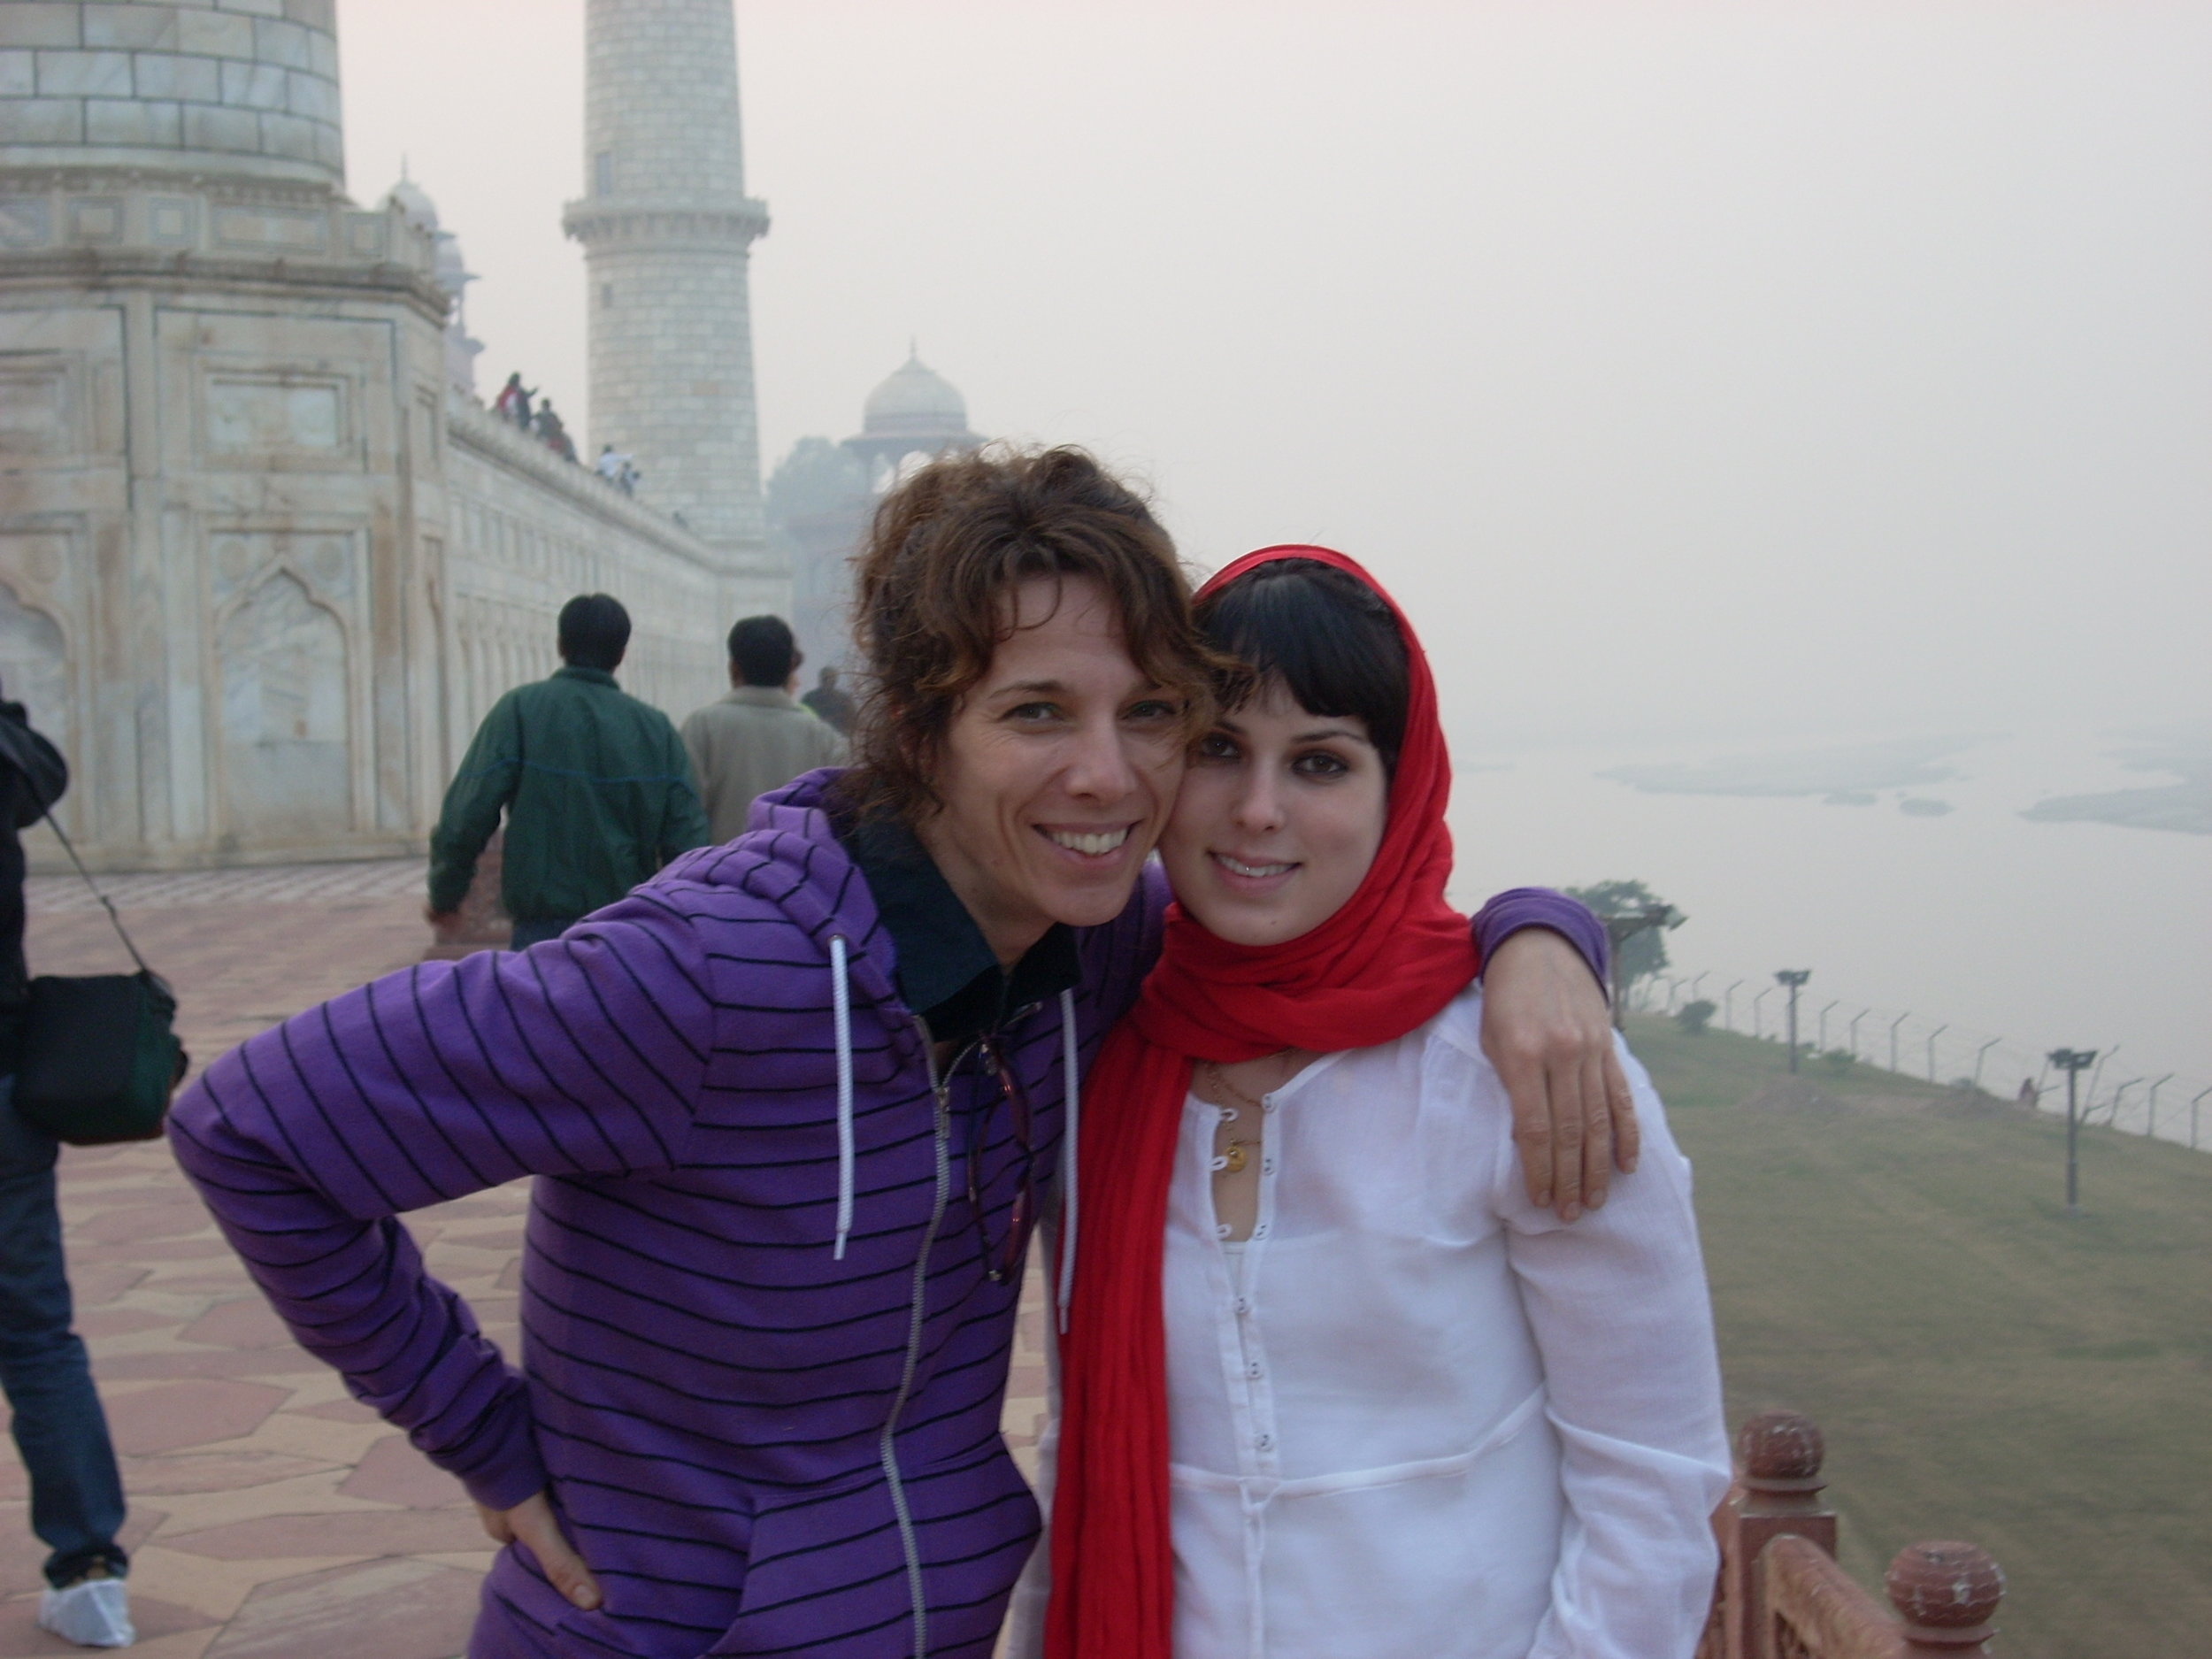 back in the day in India